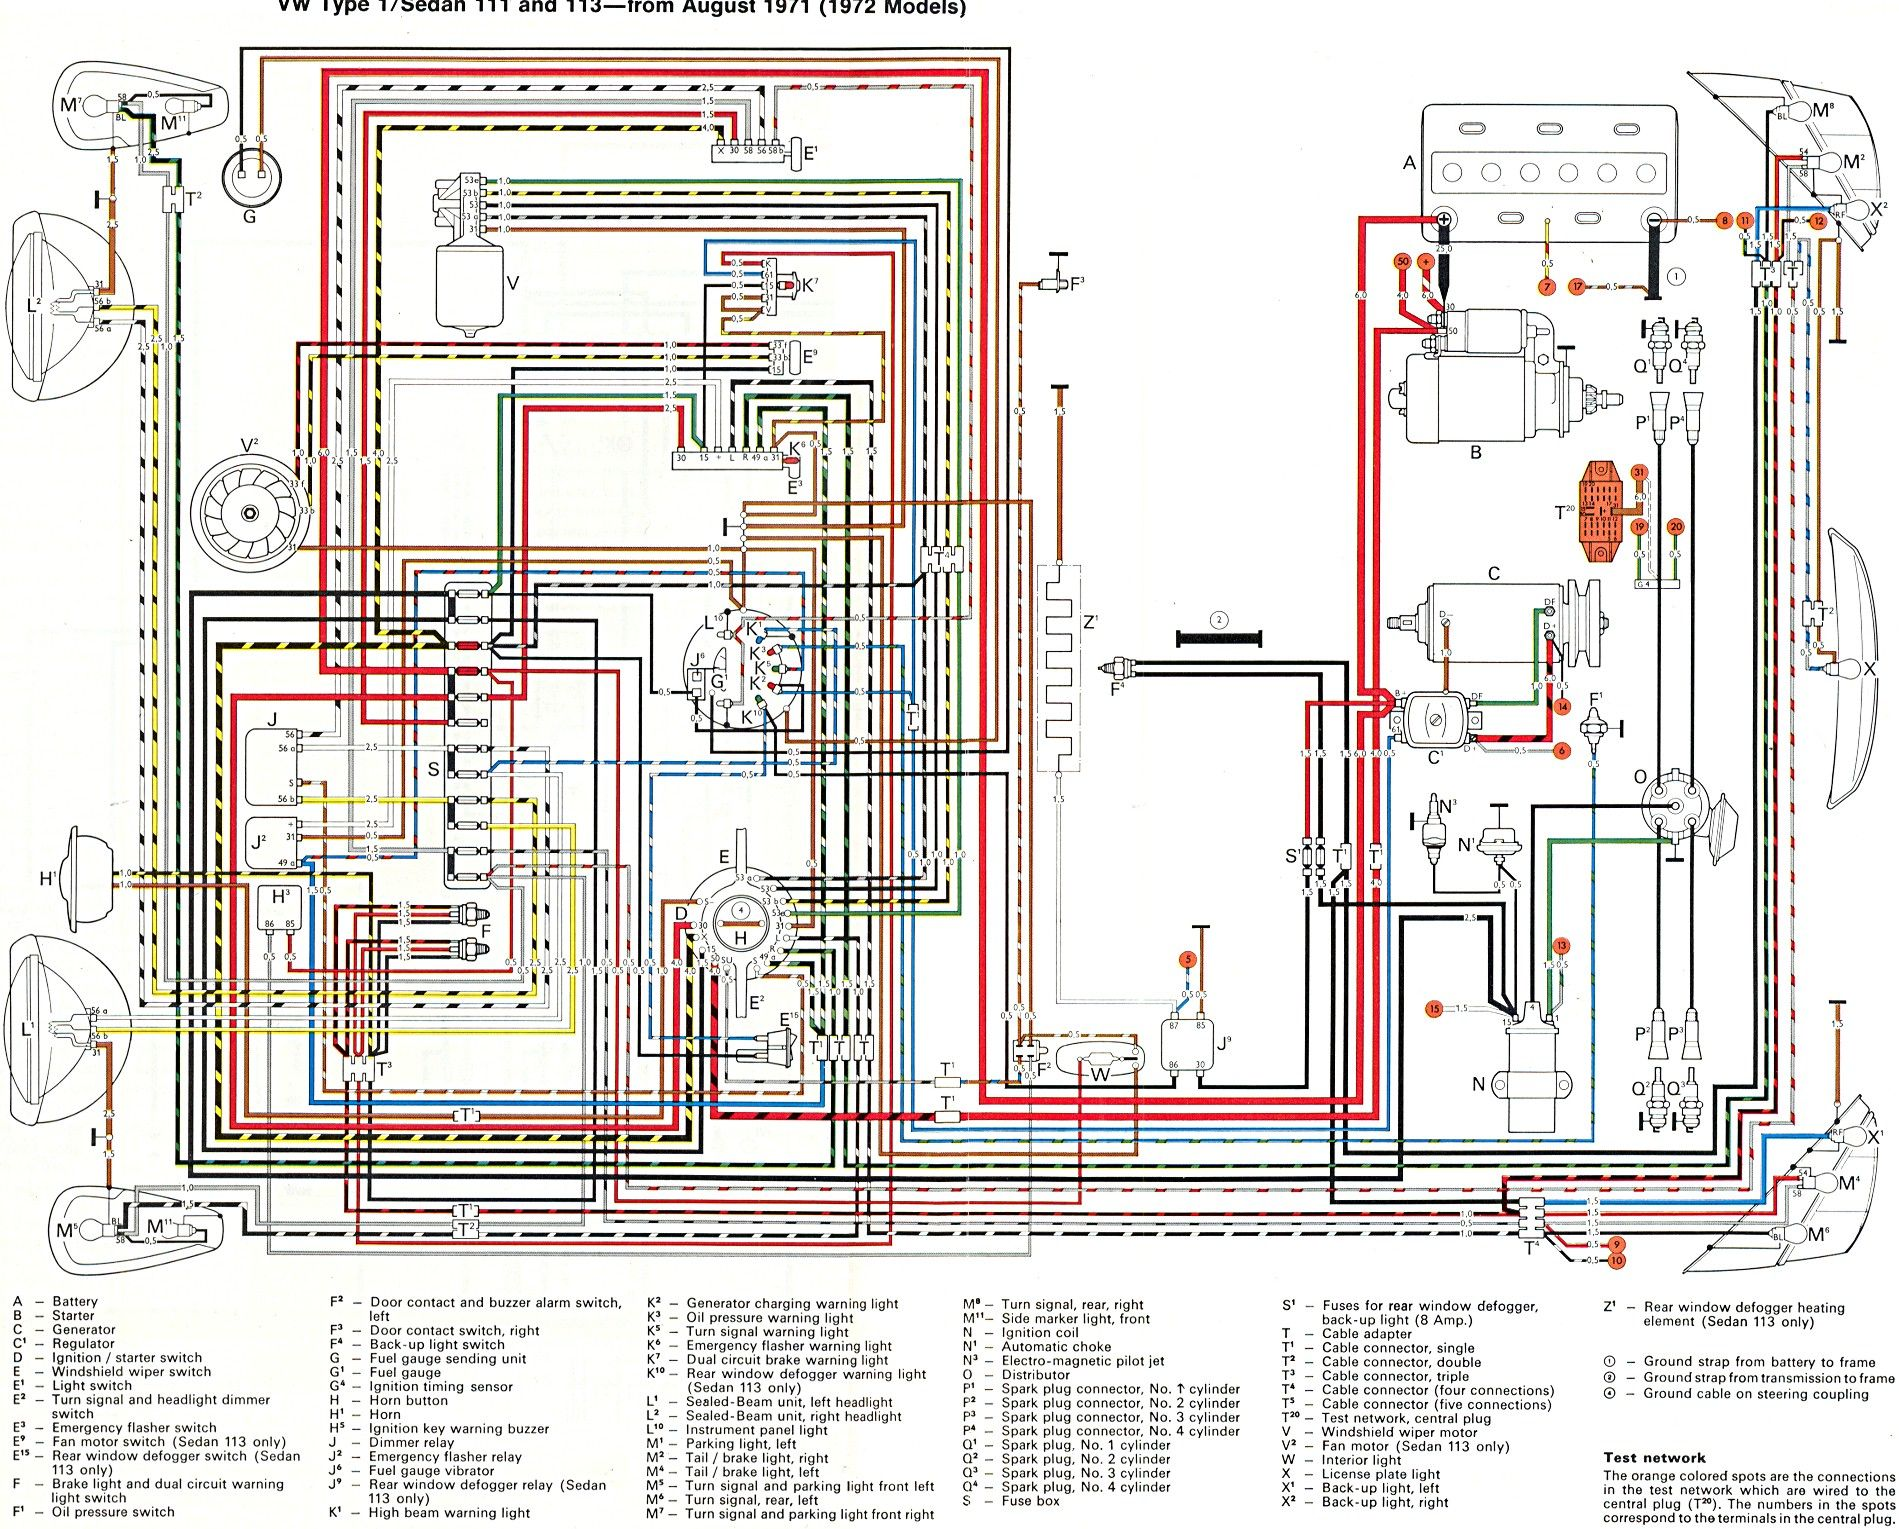 1974 Beetle Wiring Diagram 1974 Beetle Firing Order 1974 Beetle